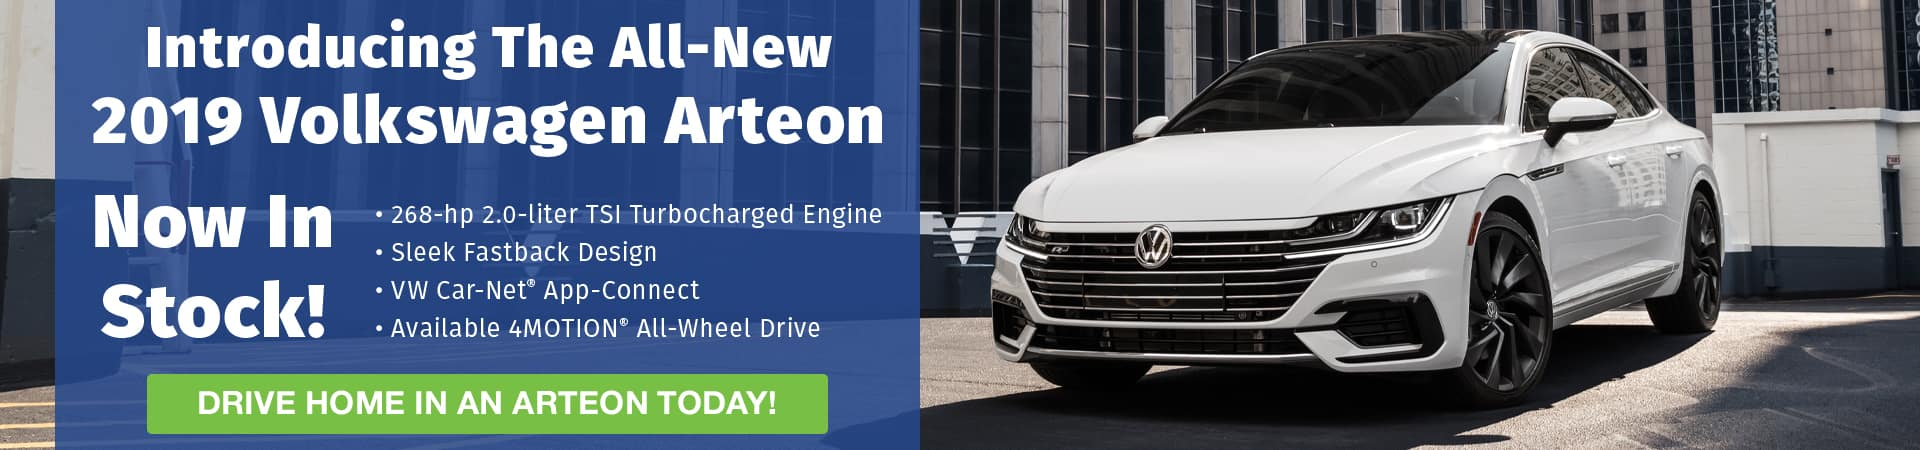 Check out the all-new 2019 Volkswagen Arteon, now in stock in Murfreesboro TN